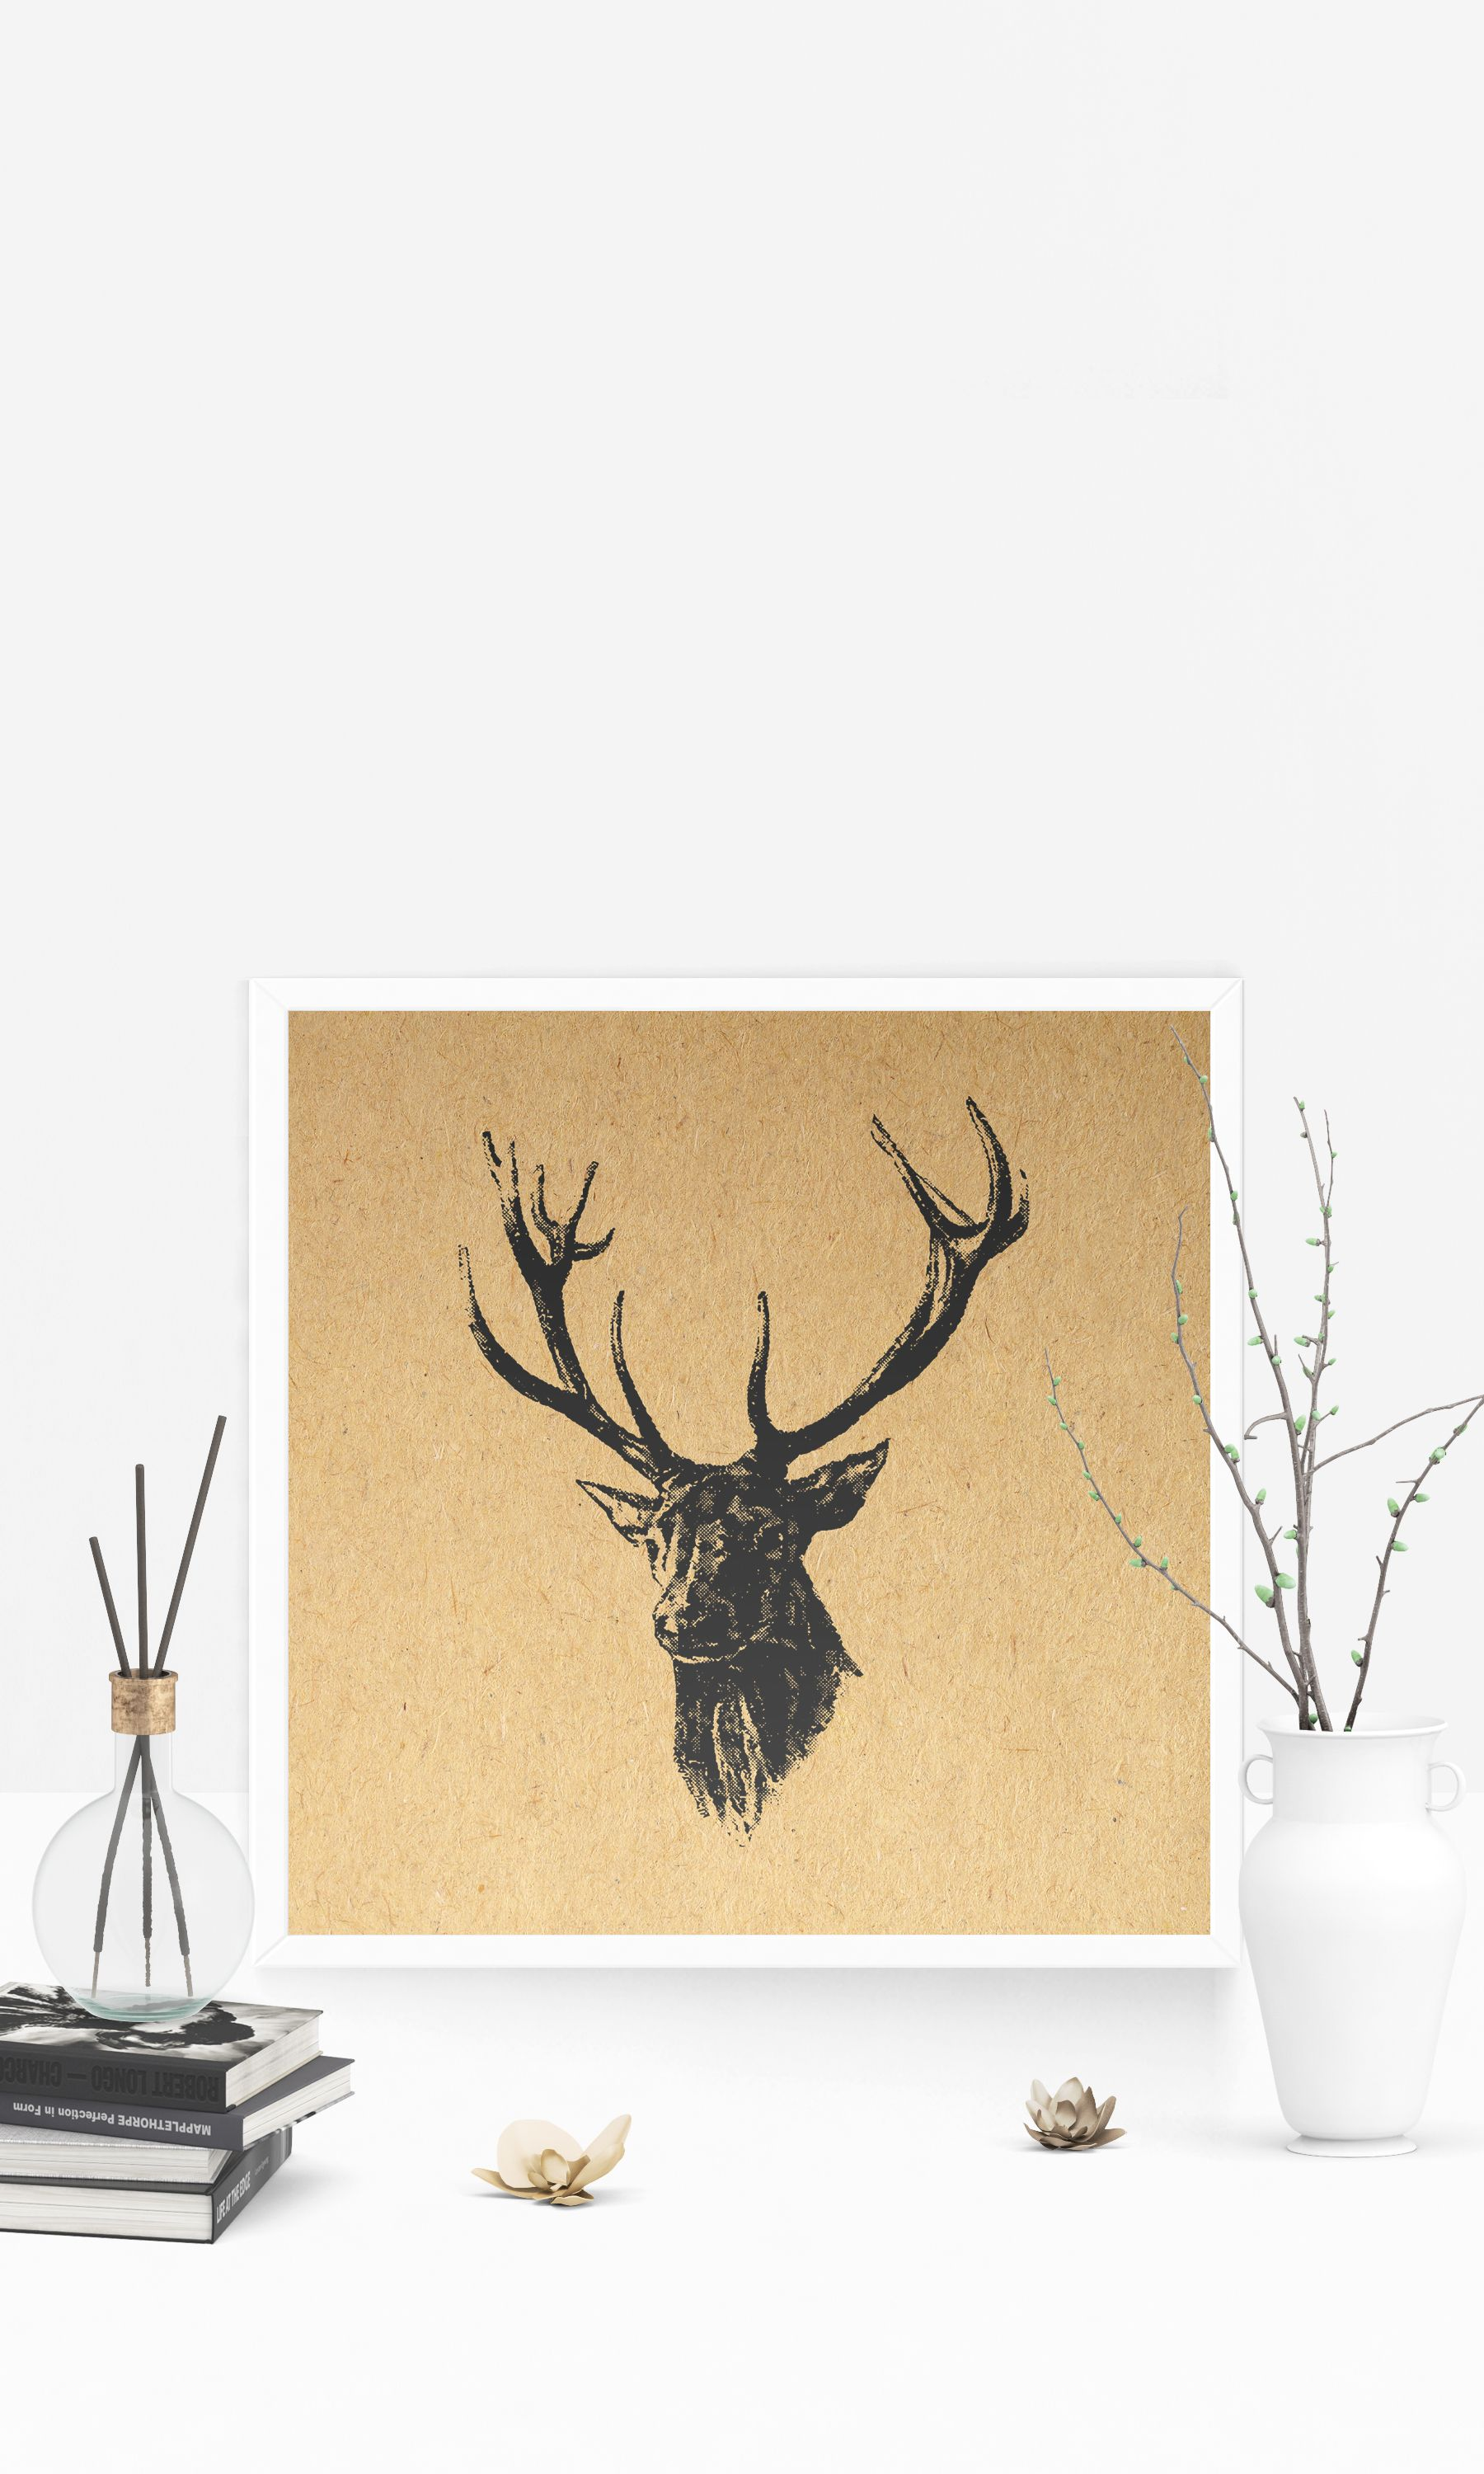 Vintage Deer with Antlers Illustrated Wall Art & Home Decoration ...